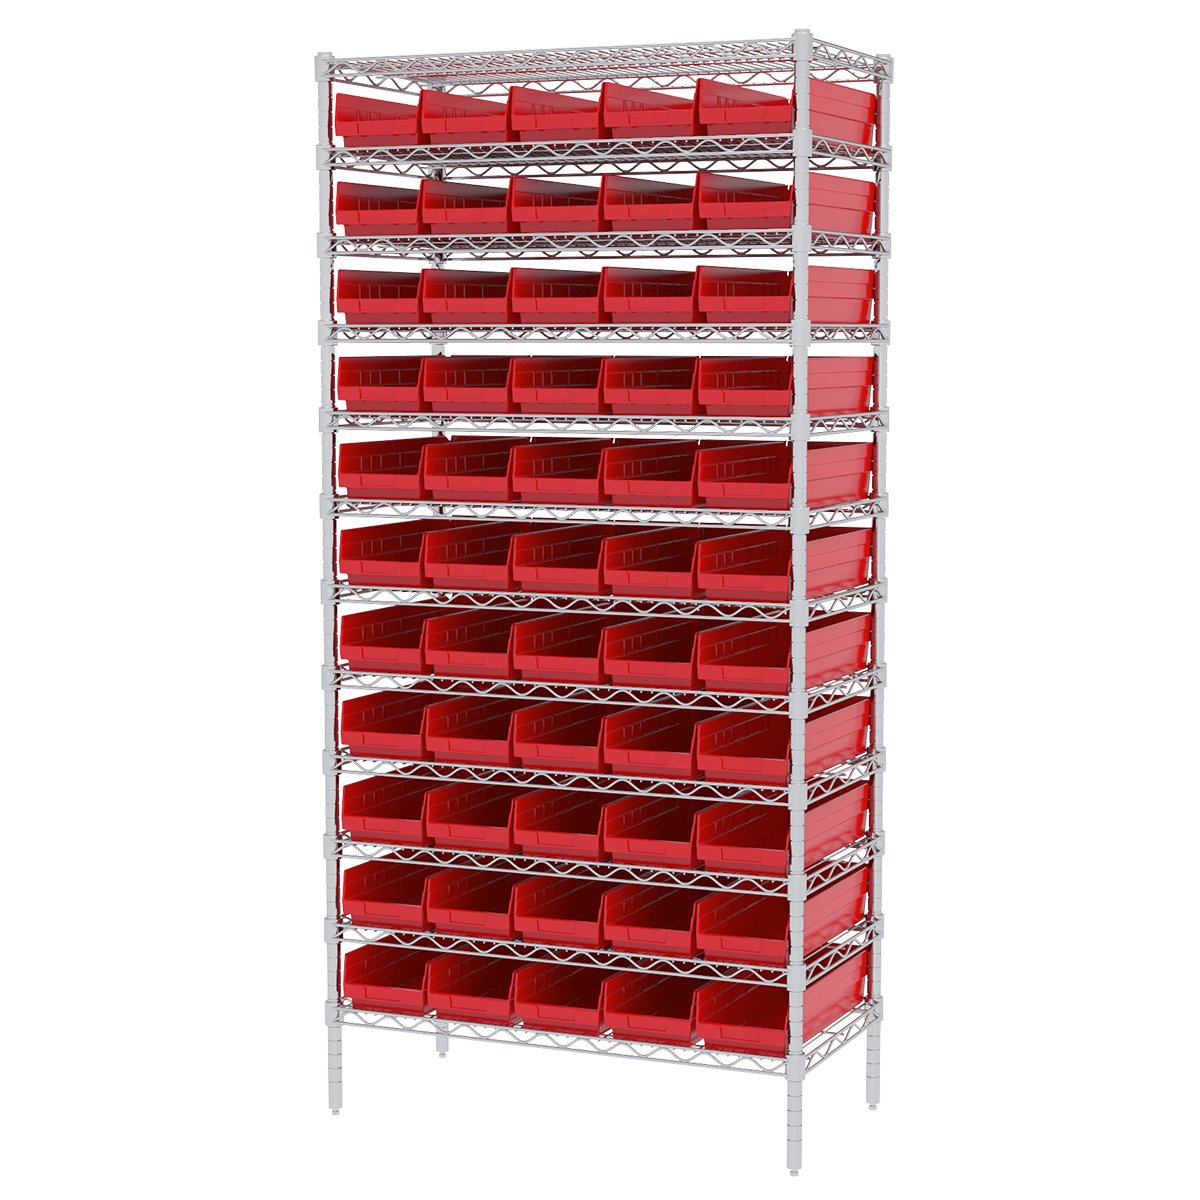 Akro-mils Aws183630138r Wire Bin Shelving System With 12 Shelves And